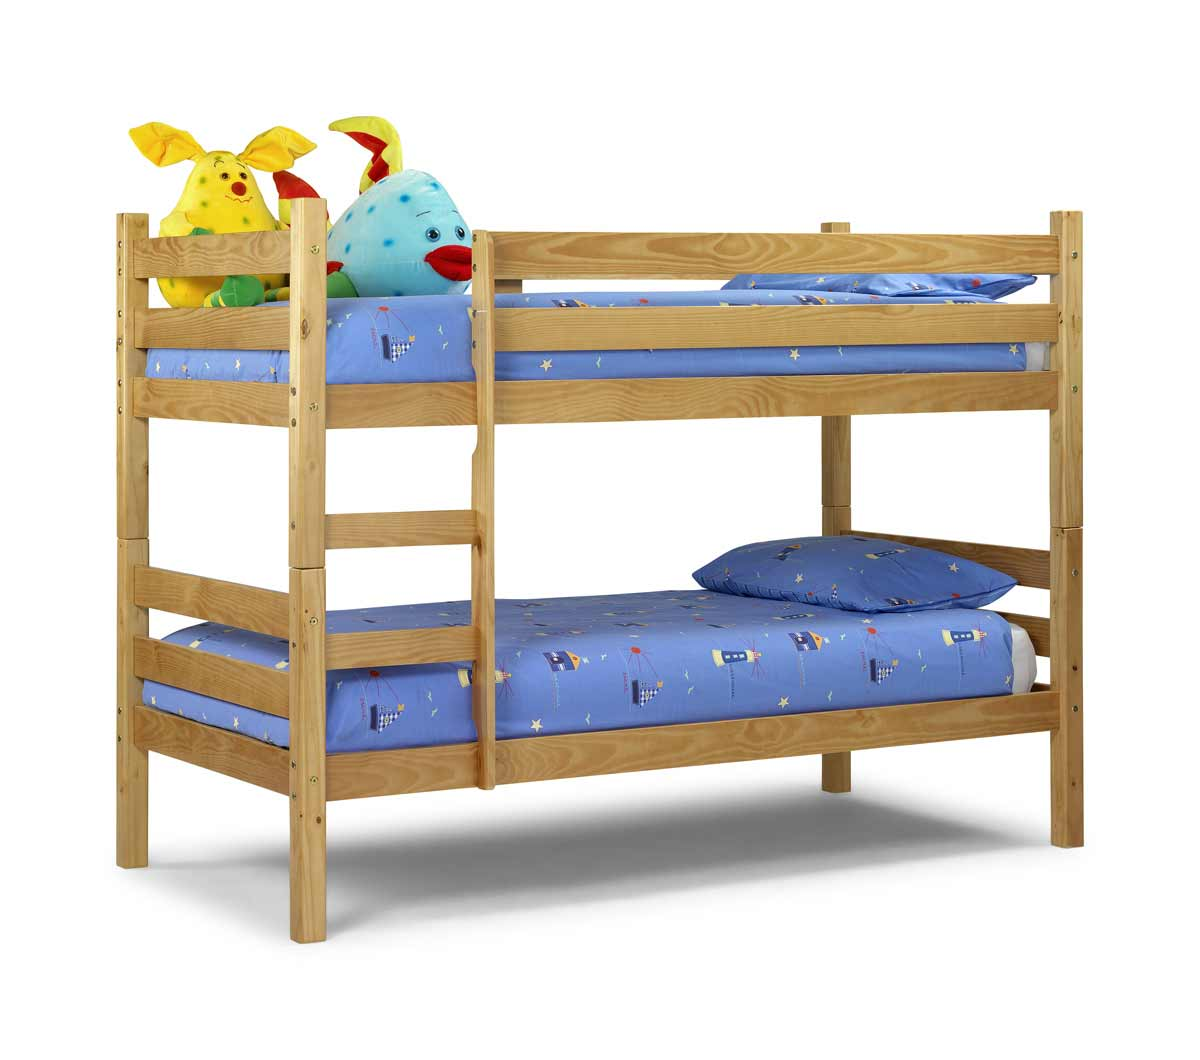 Best cheap bunk beds for kids with area rugs and laminate flooring combined with picture on the wall for kids bed room ideas